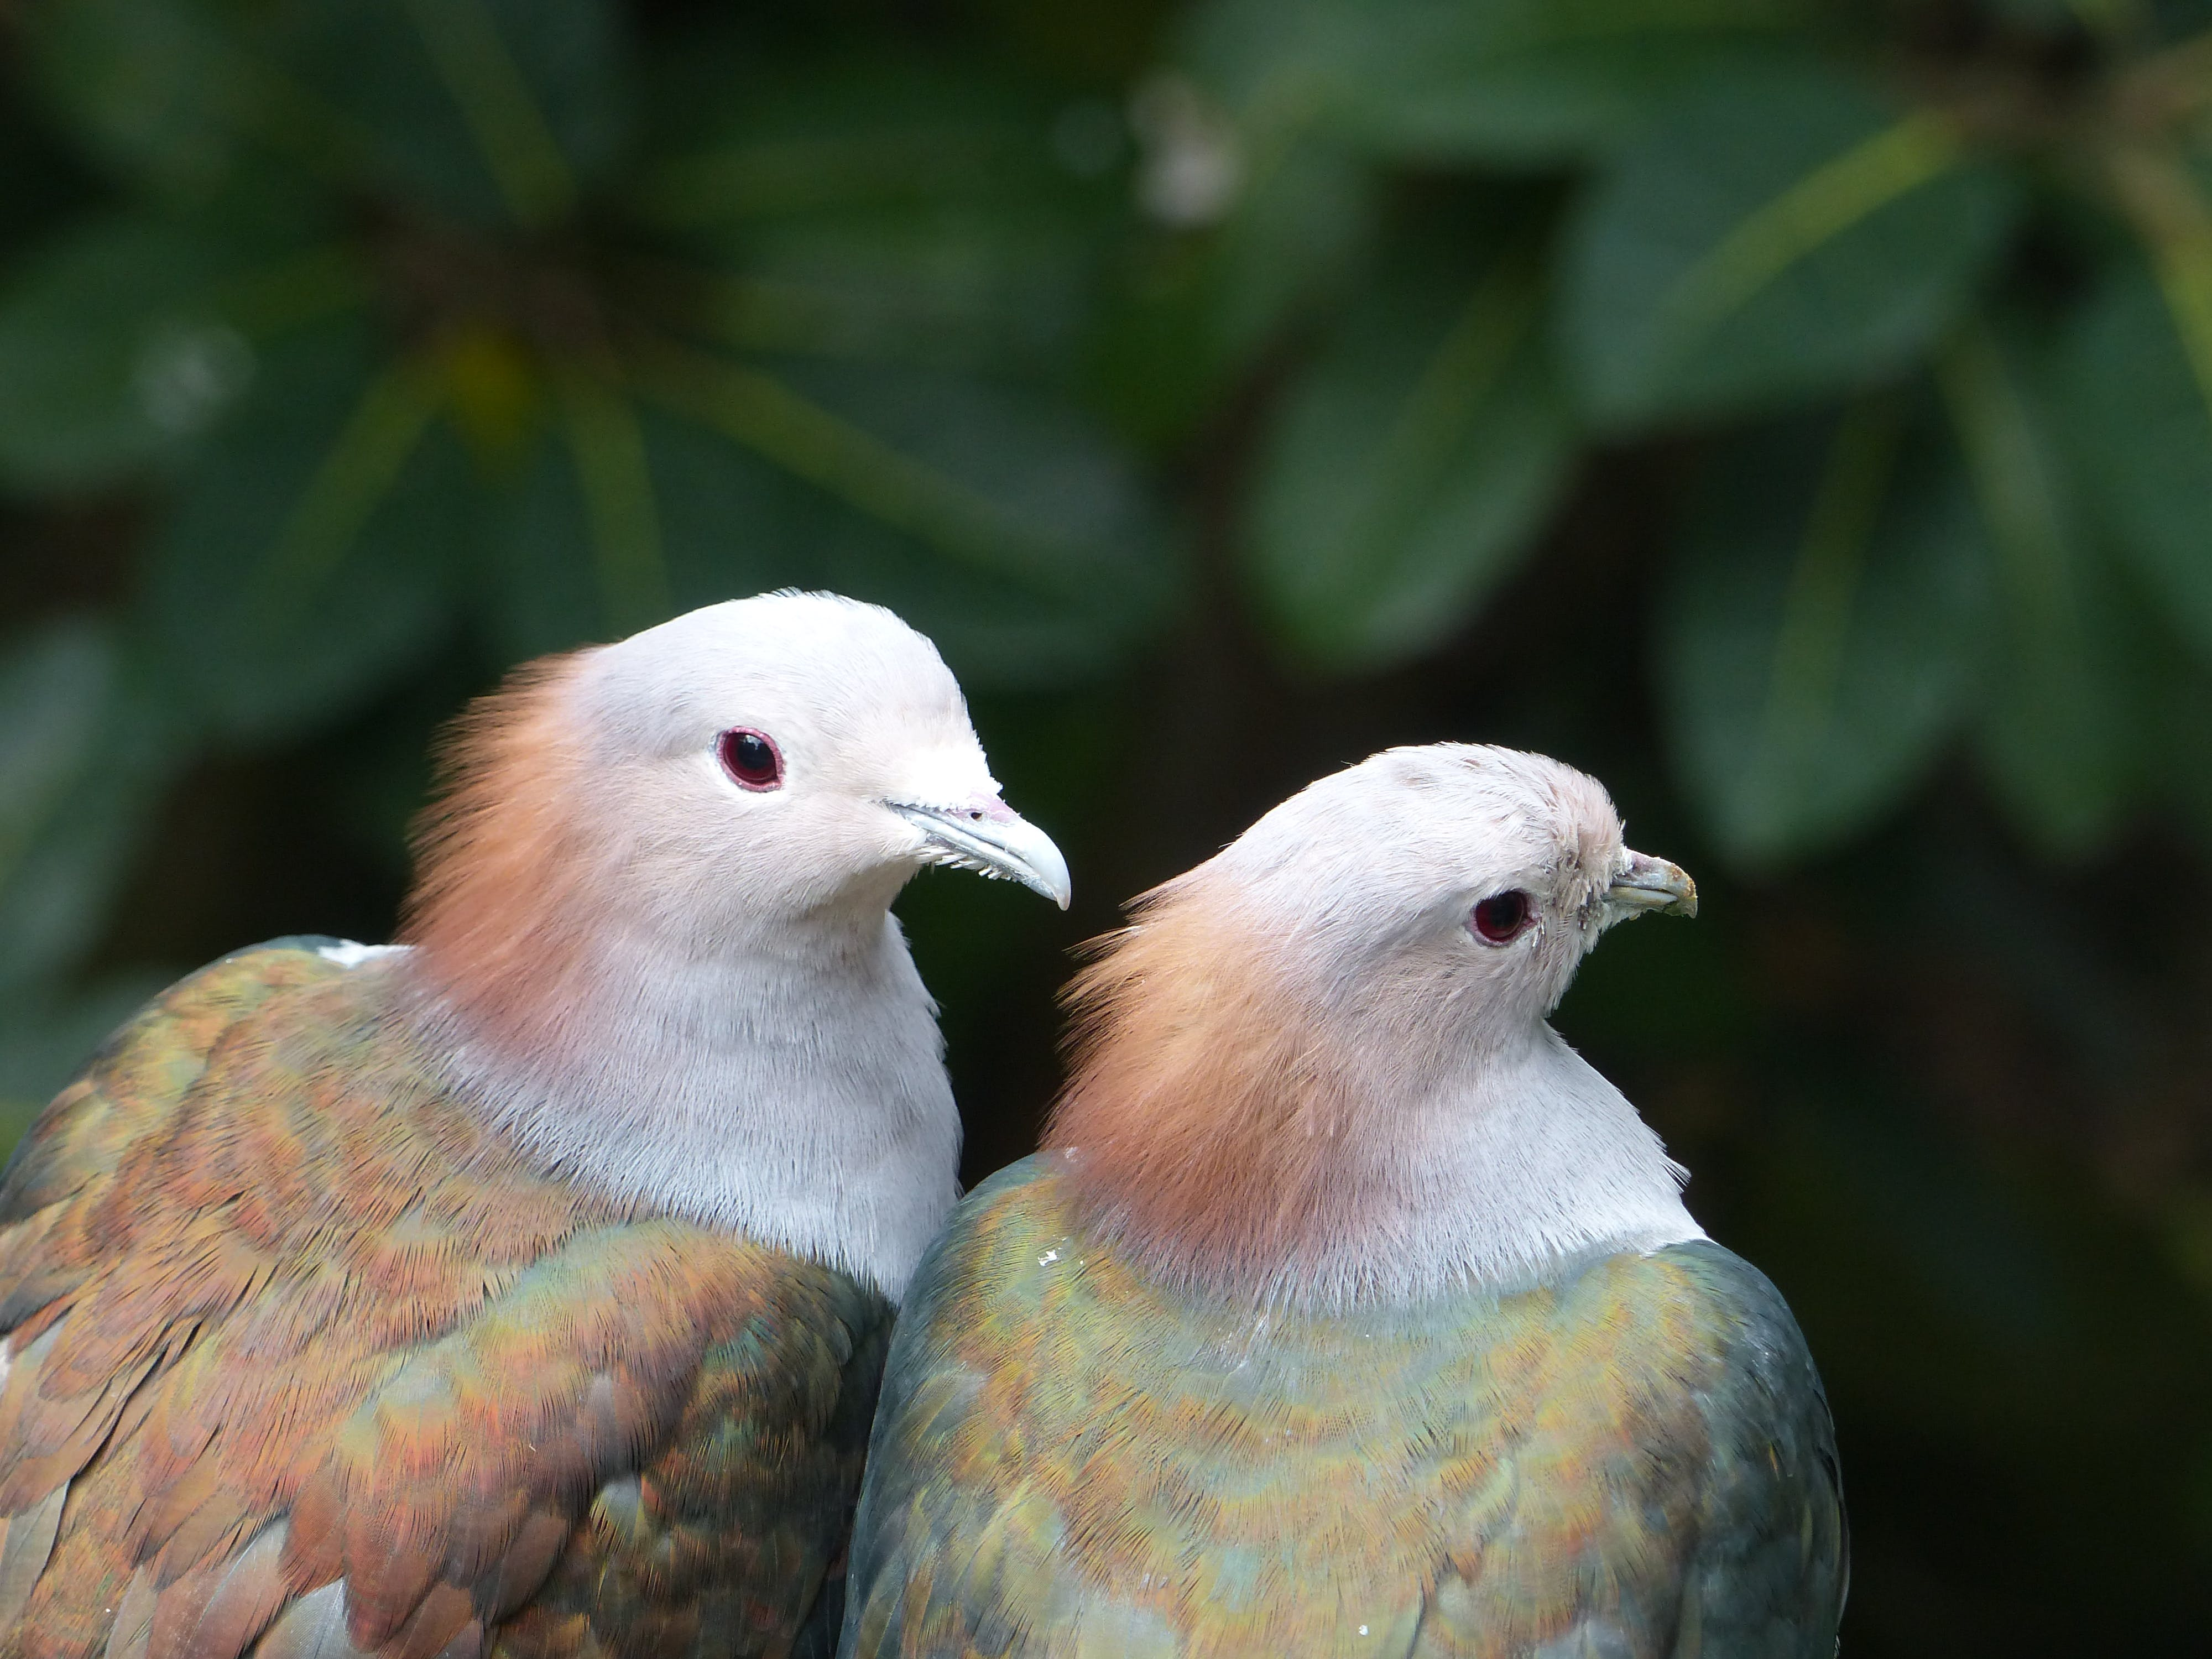 Two White-brown-and-green Birds Selective Focus Photography